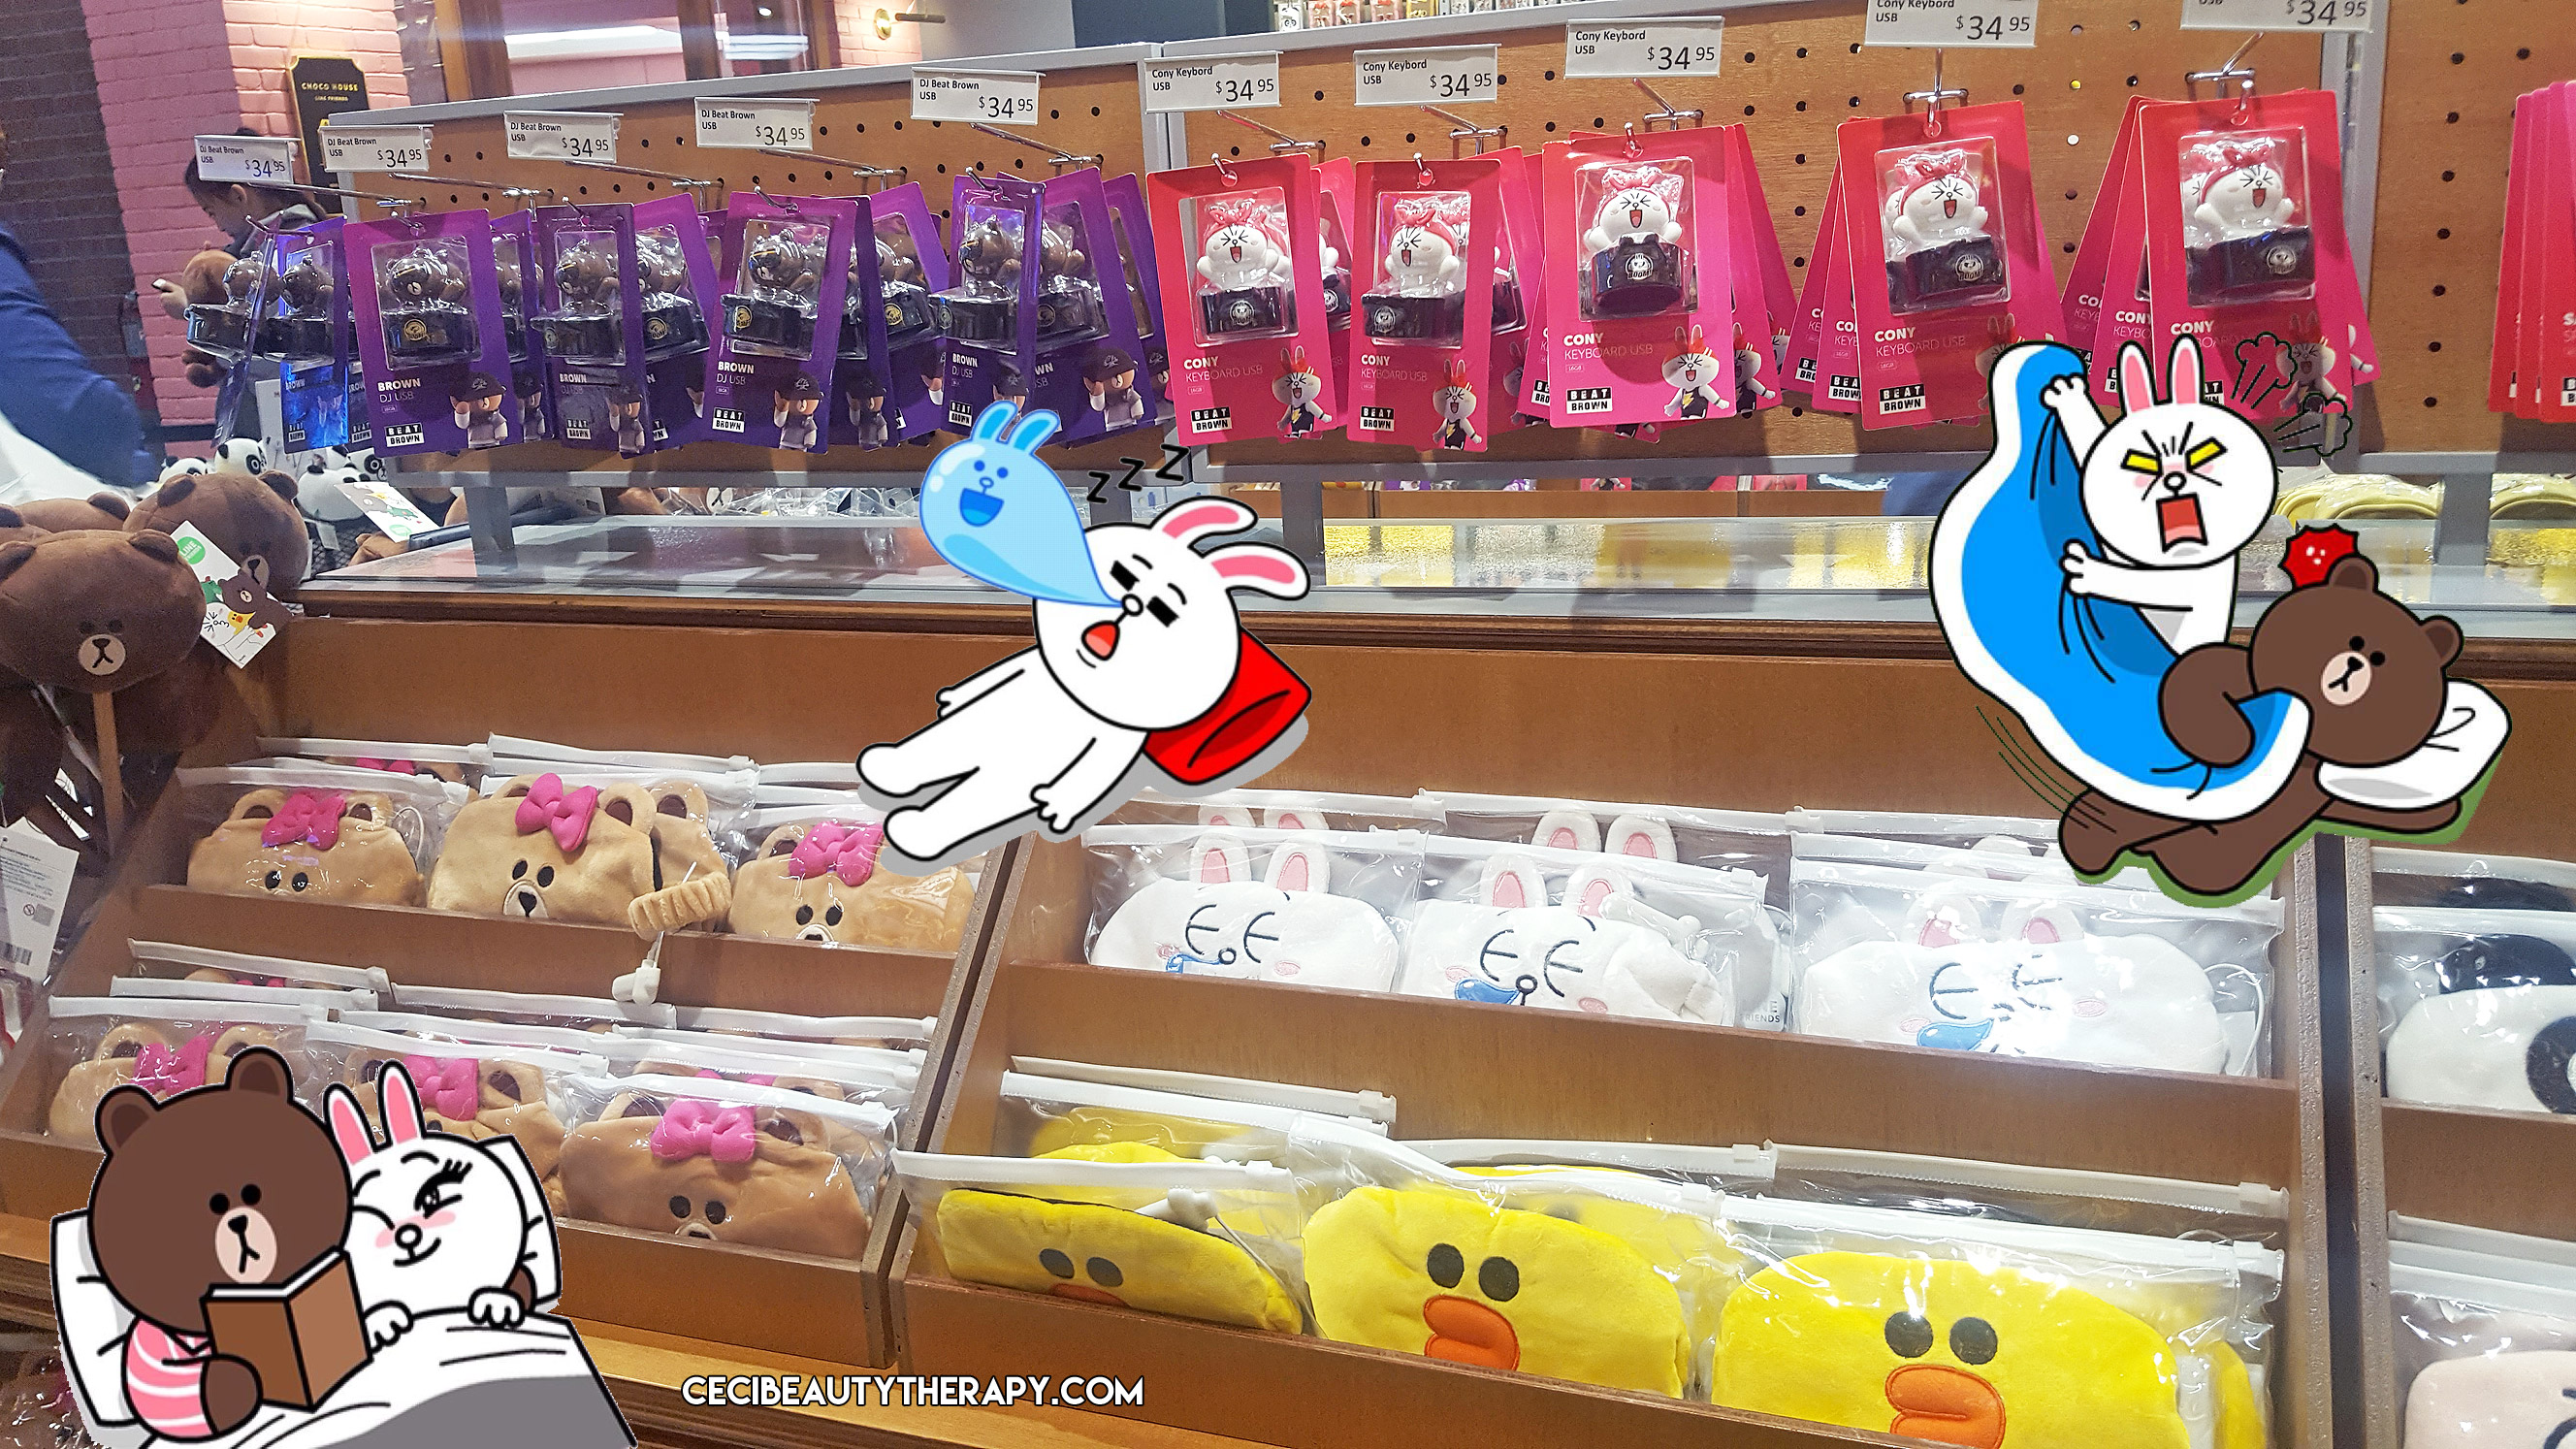 LINE_FRIENDS_NYC_TIMES_SQ_(17)